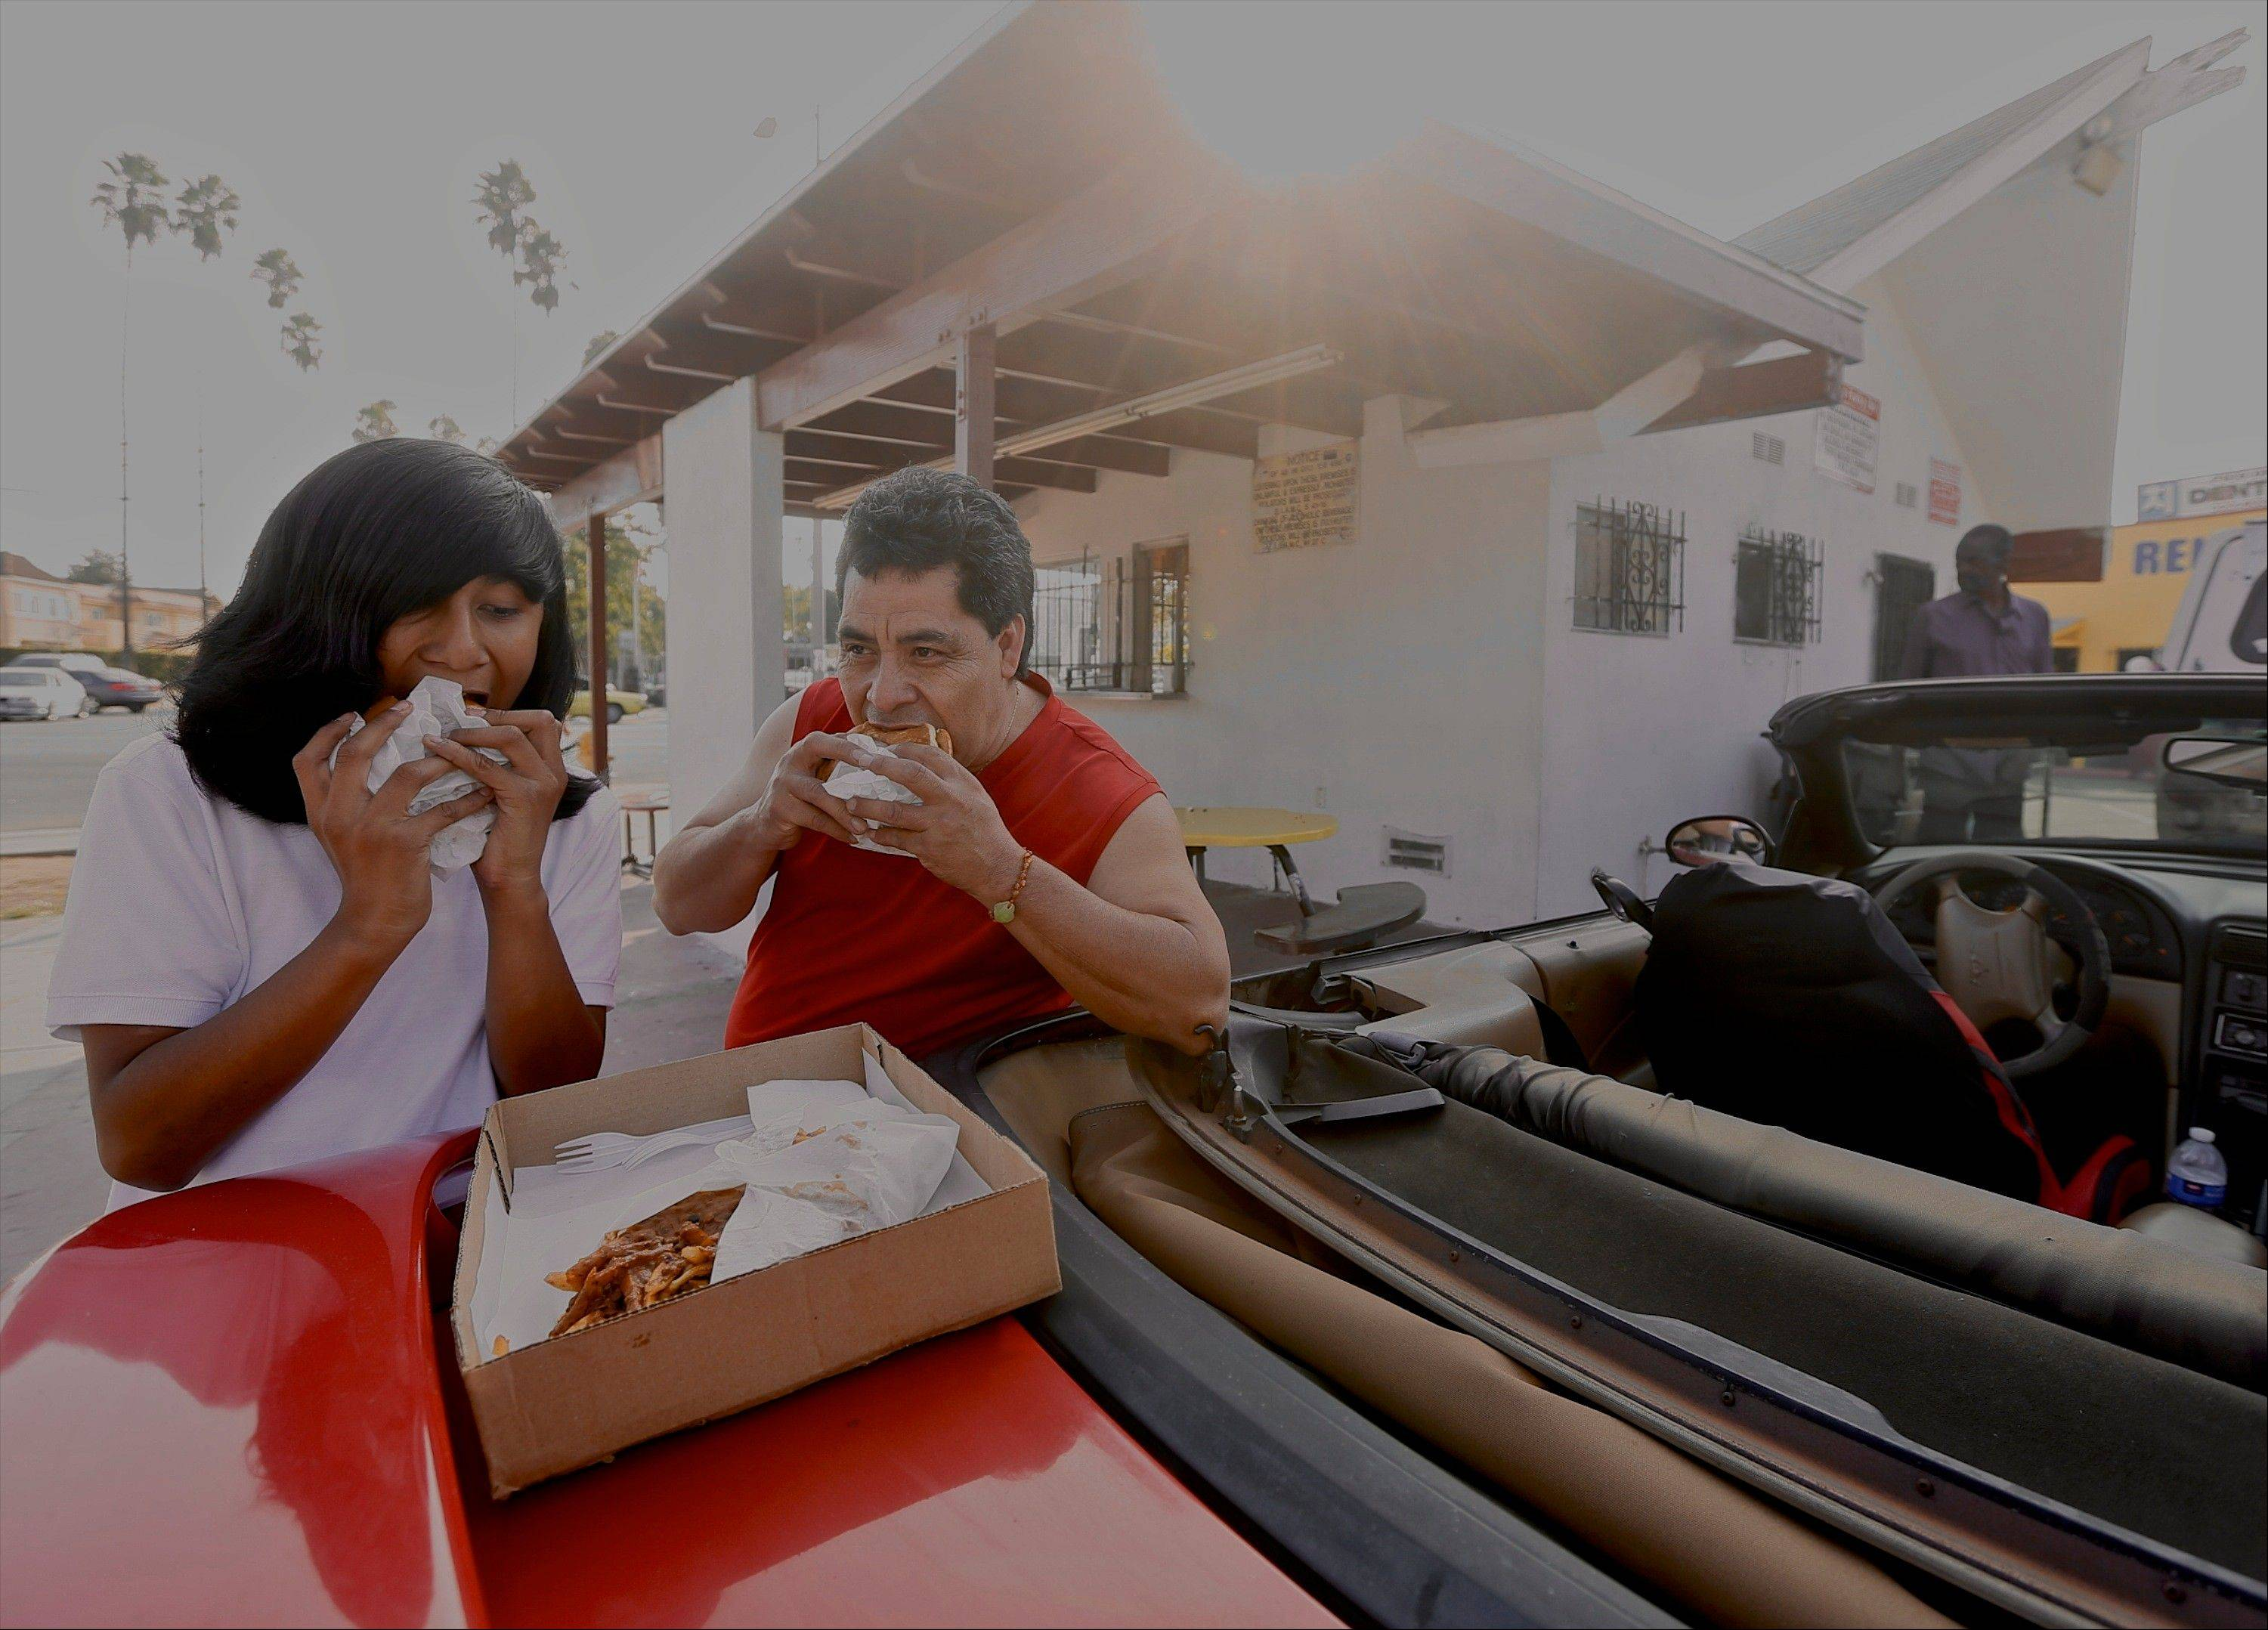 Patrons Fernando Ramos, 44, and his son Brian, 13, eat their burgers on the back of their Mustang convertible at the parking lot of Capitol Burgers in Los Angeles.